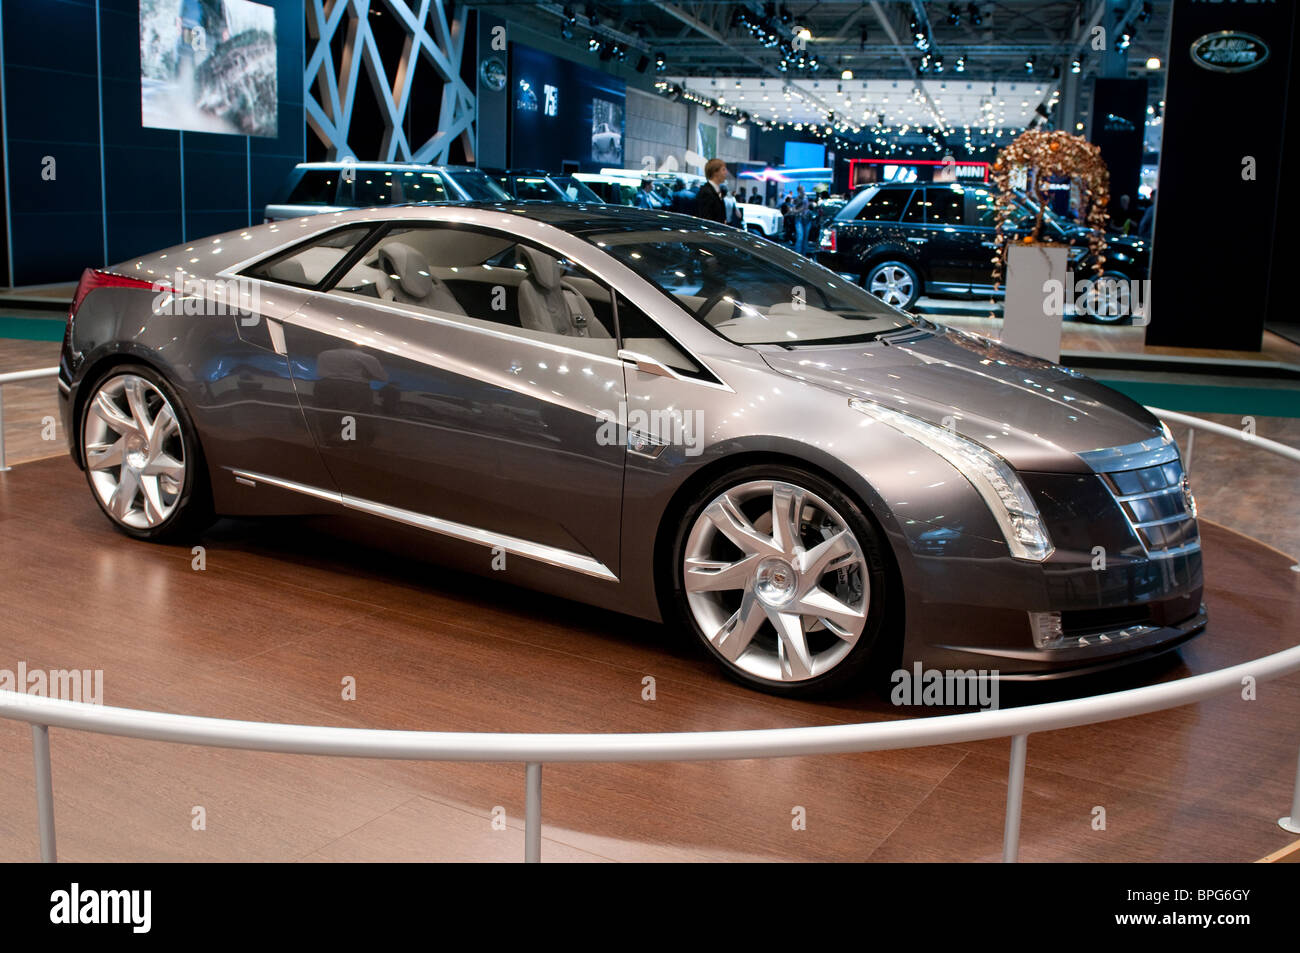 MOSCOW, RUSSIA - August 26: Moscow International Automobile Salon 2010. Cadillac Converj Concept car - Stock Image